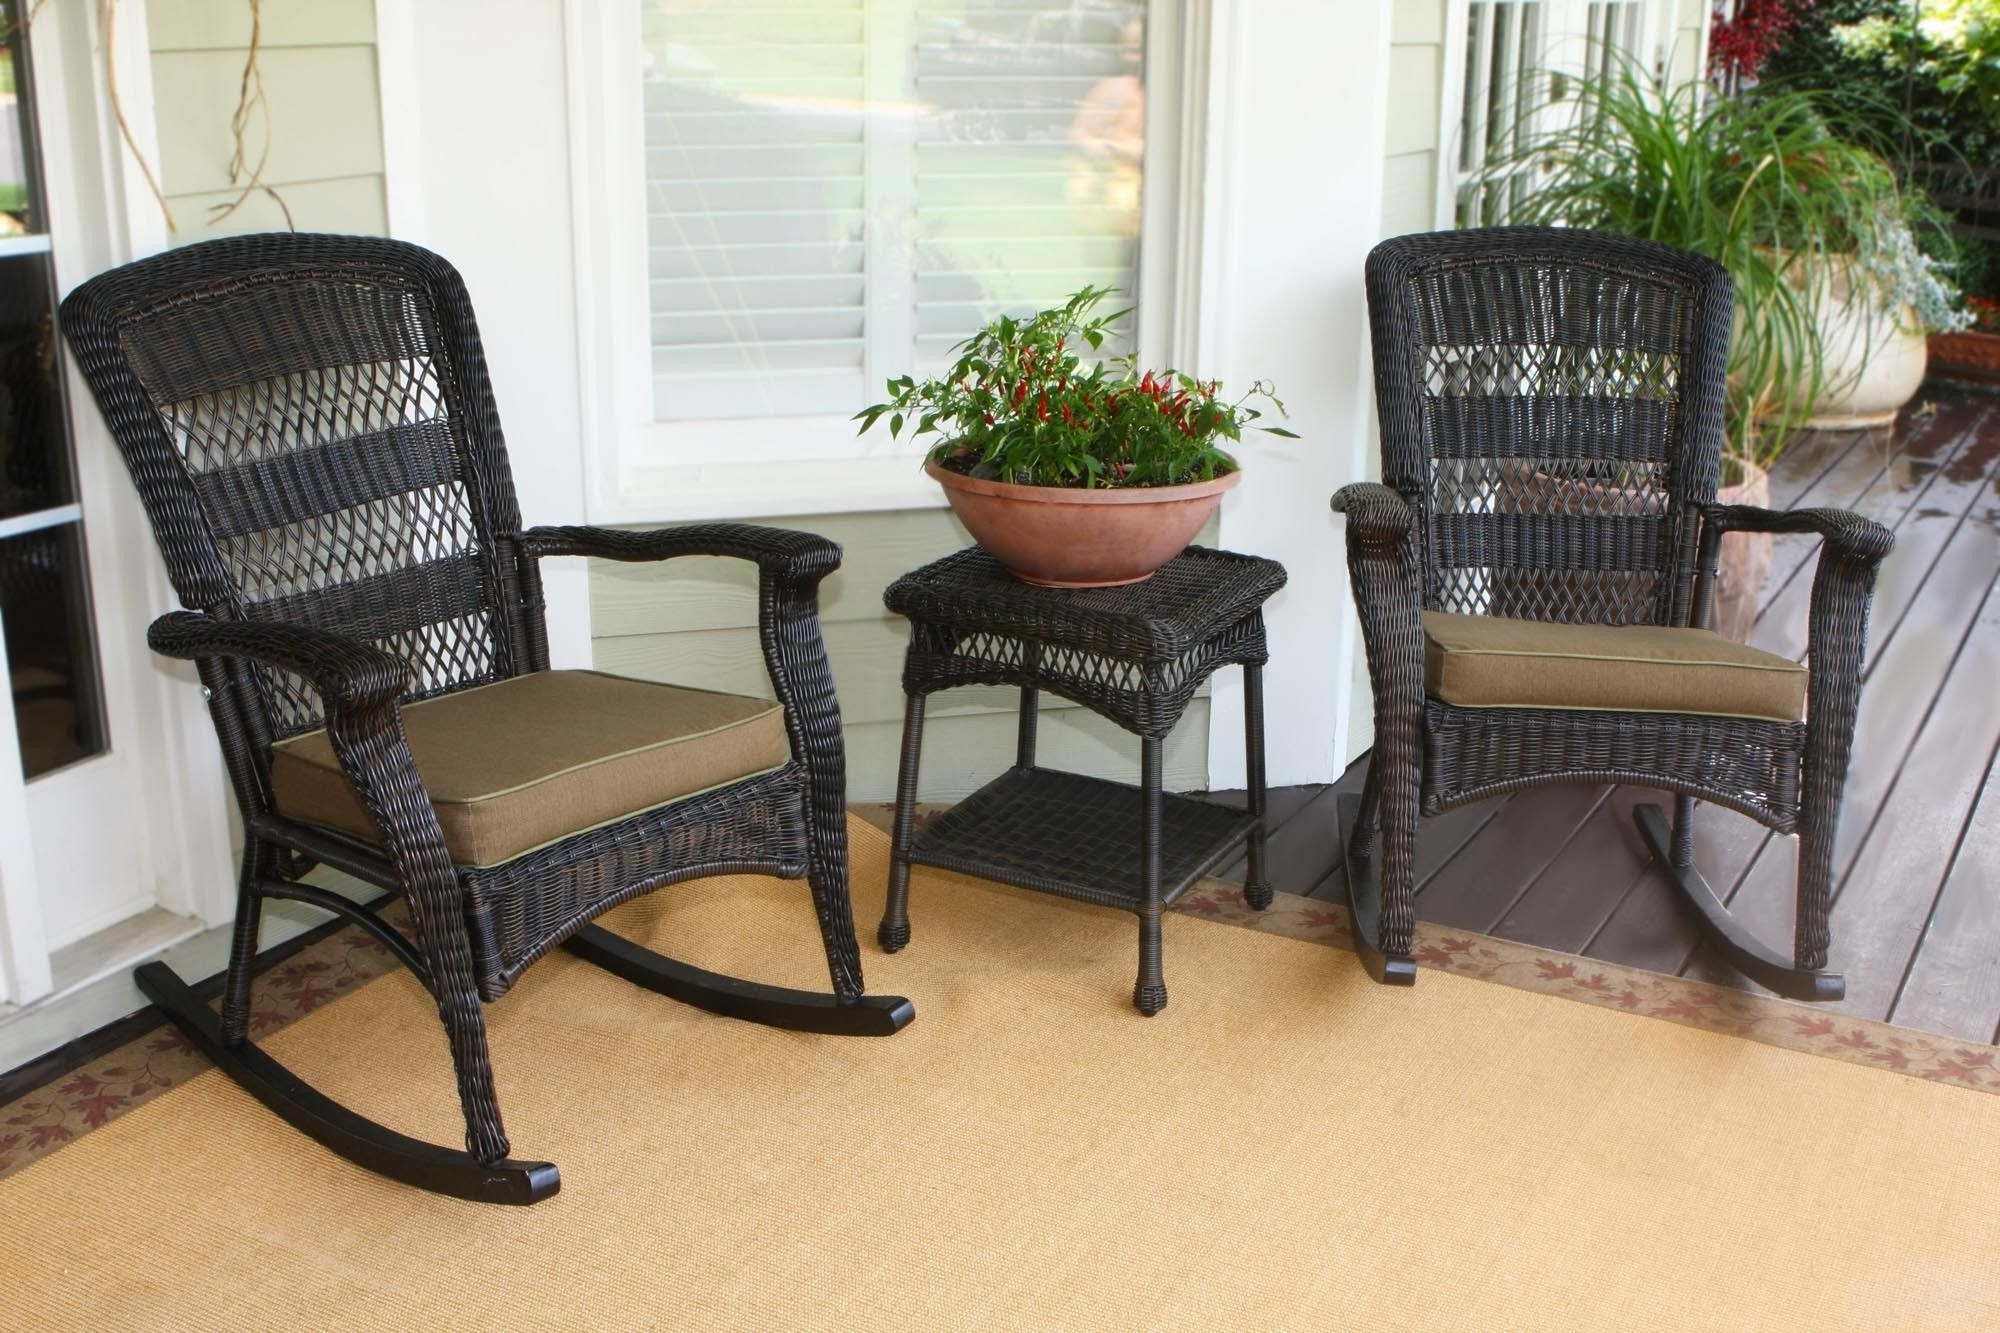 Outdoor Wicker Rocking Chairs Regarding Most Popular Fancy Wicker Outdoor Chair Design Inspiration : Remarkable Dark (View 12 of 20)